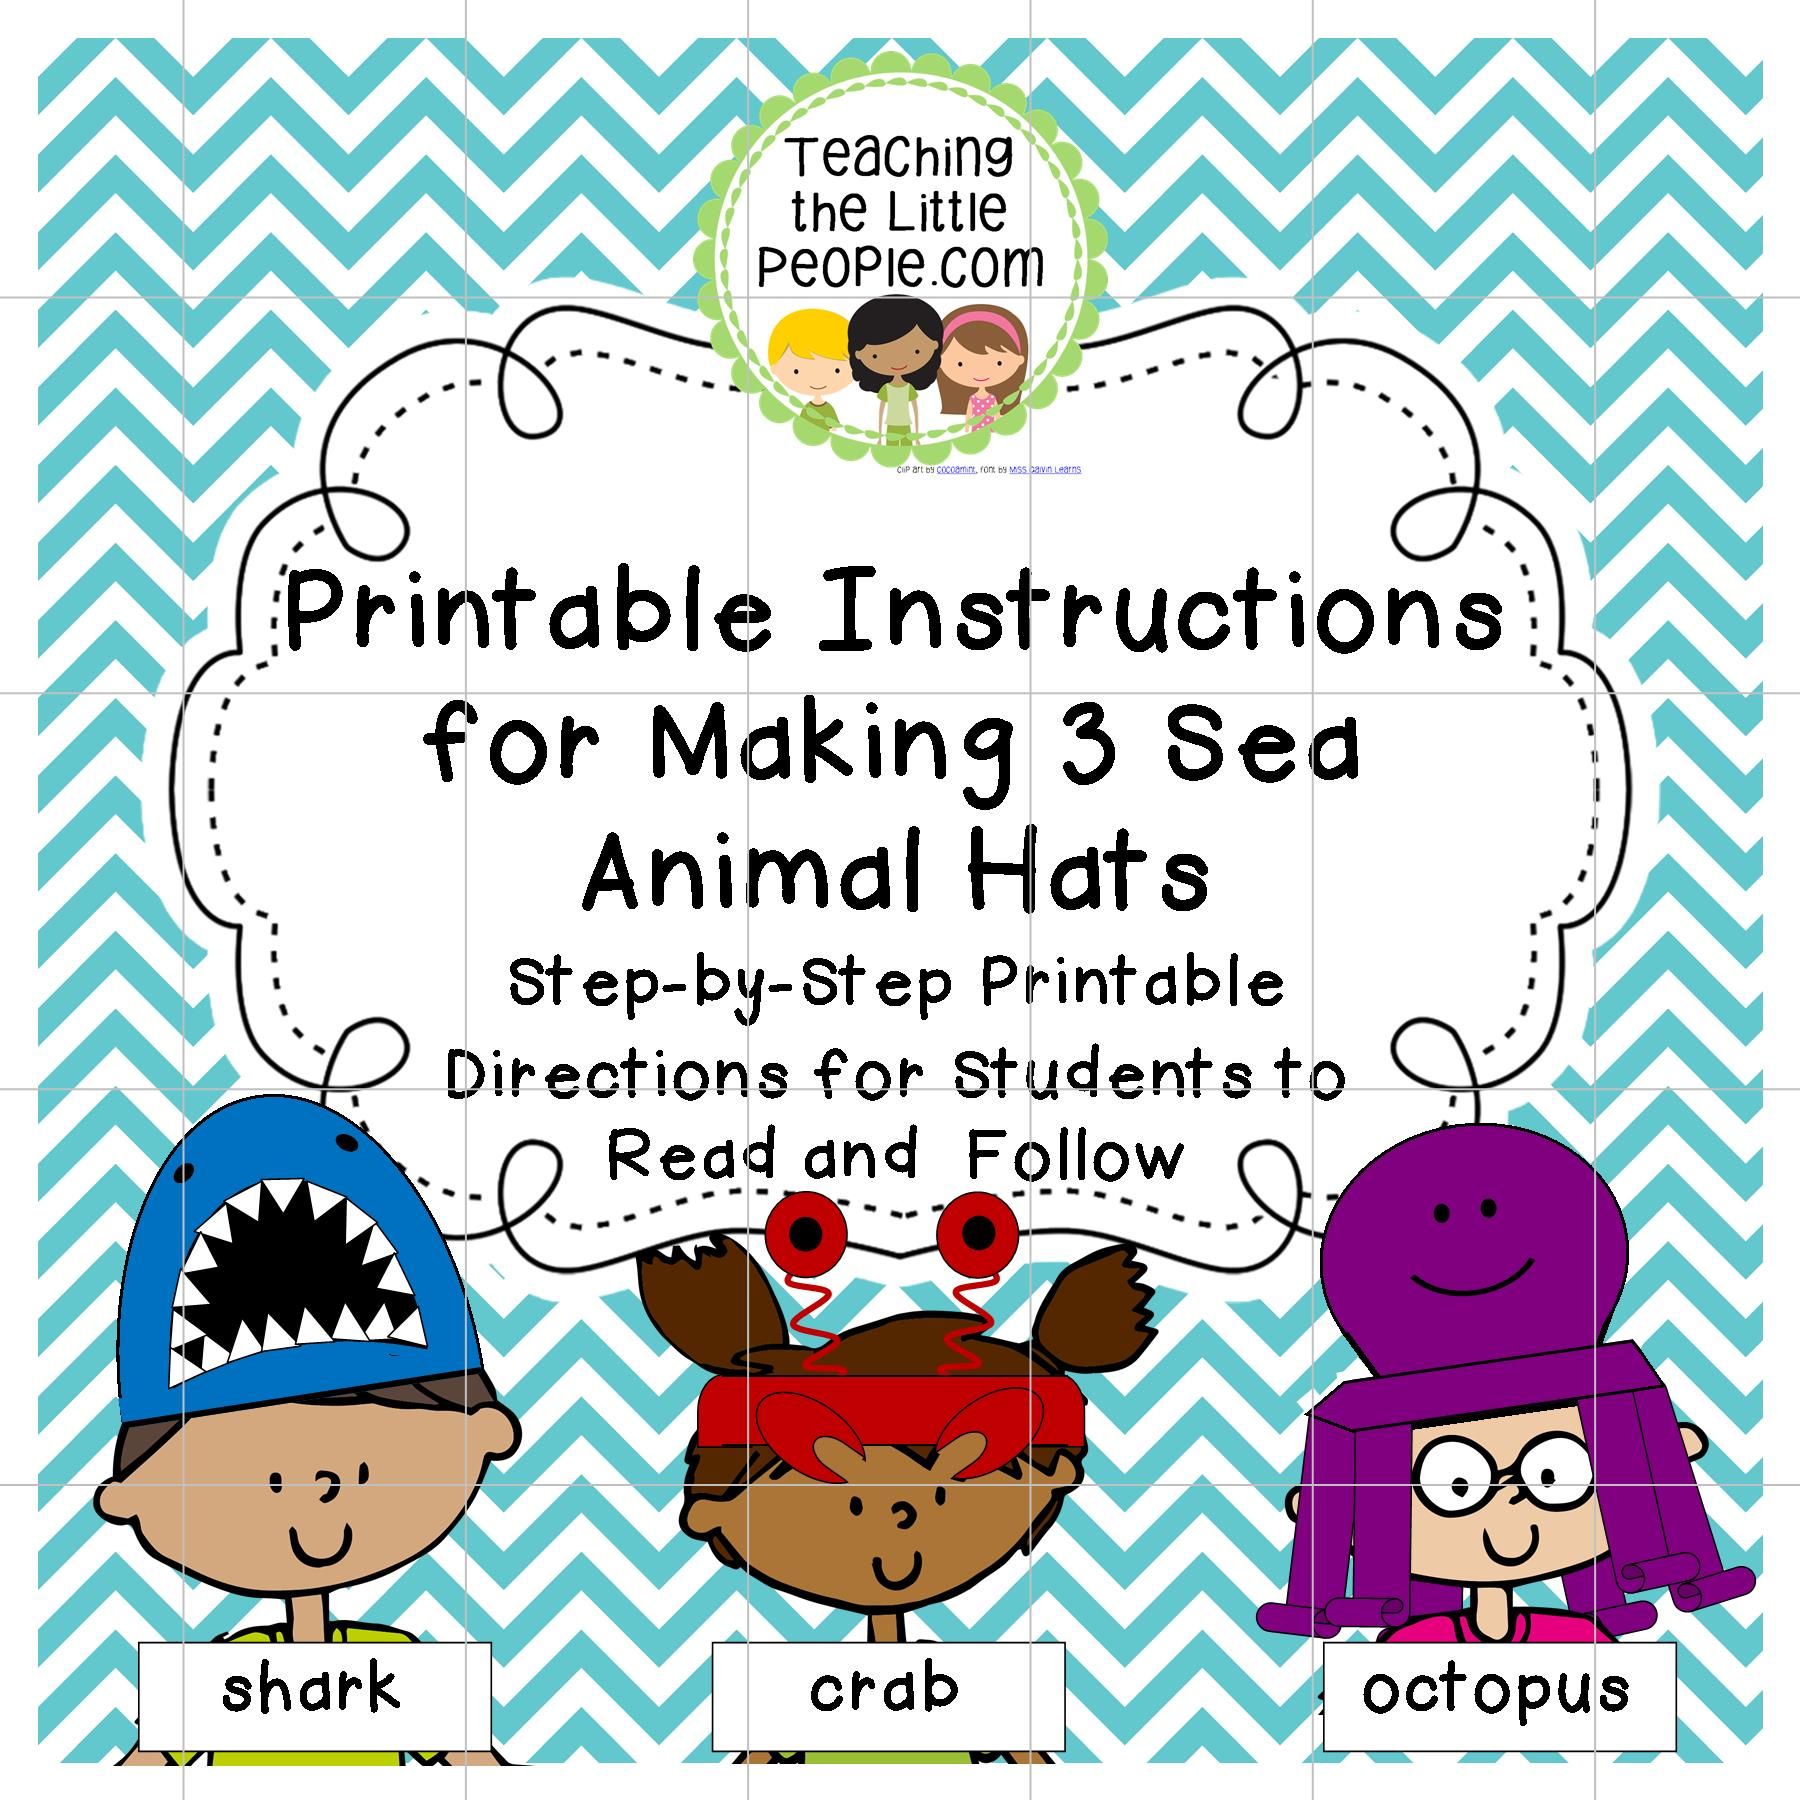 Printable Instructions for Students to Follow to Make 3 Sea Animal Hats Image